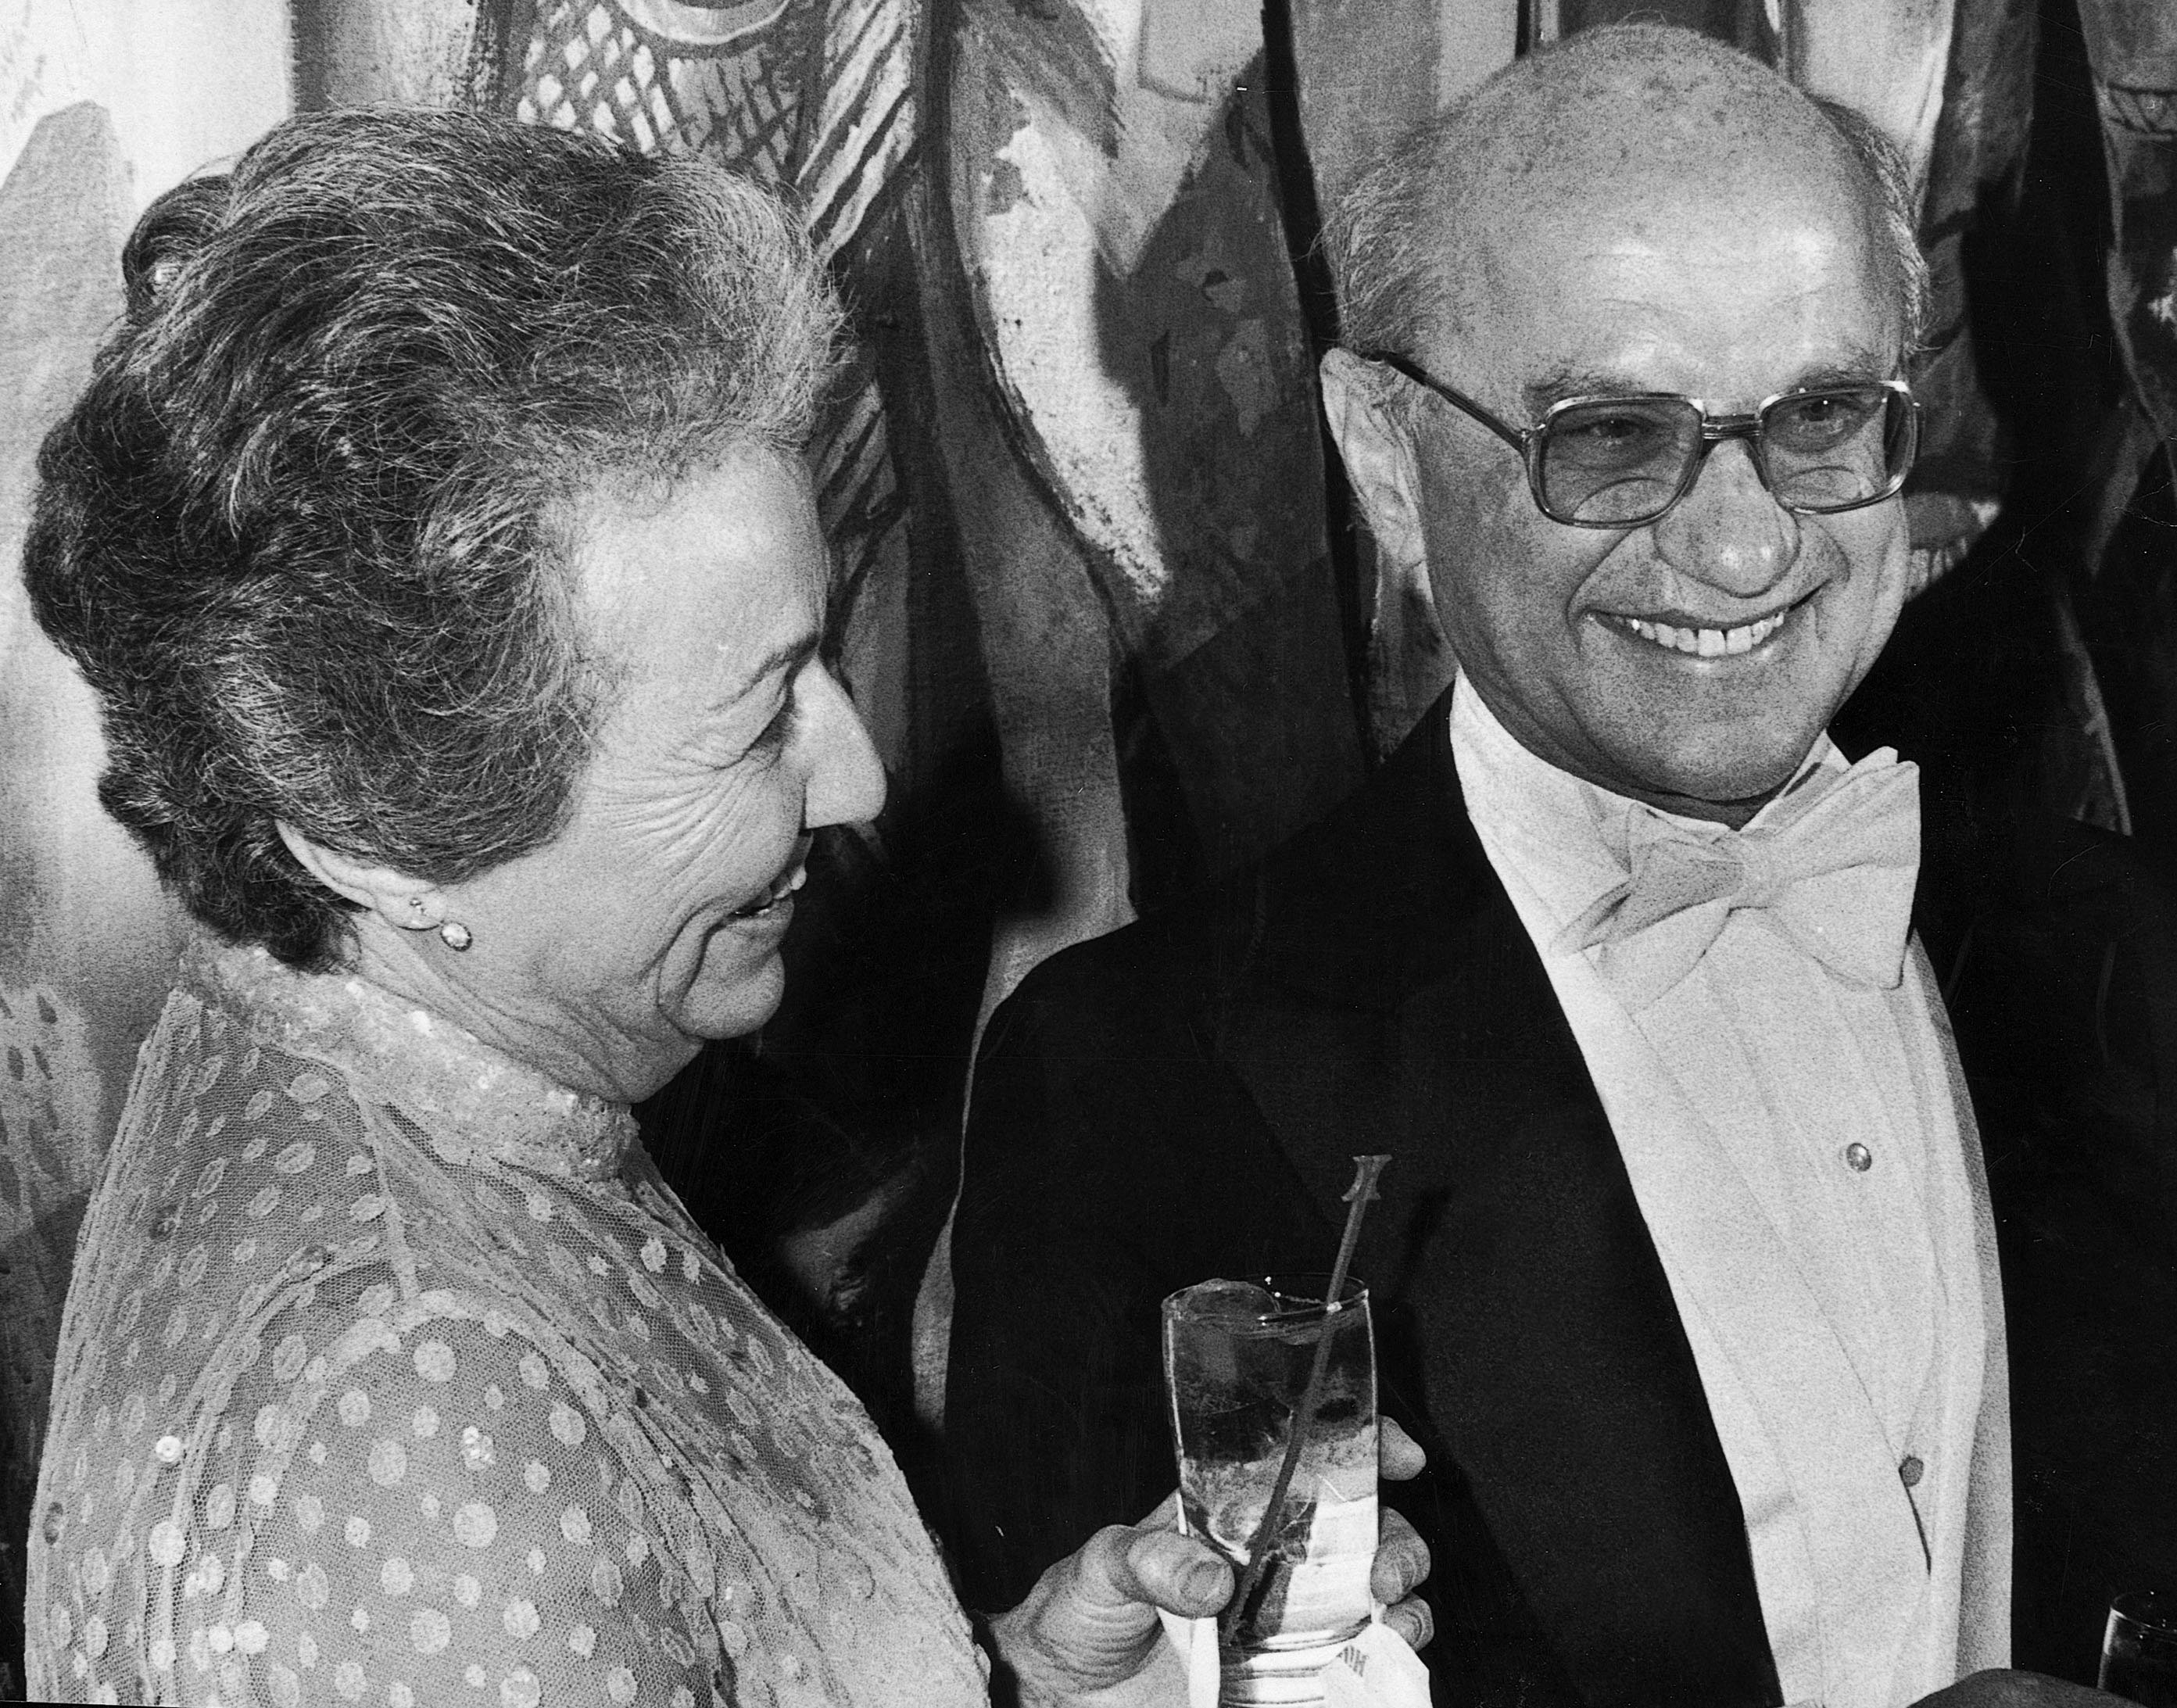 happy birthday milton friedman archives the northwest daily marker university professors can try to hide friedman but truth is hard to put a lid on